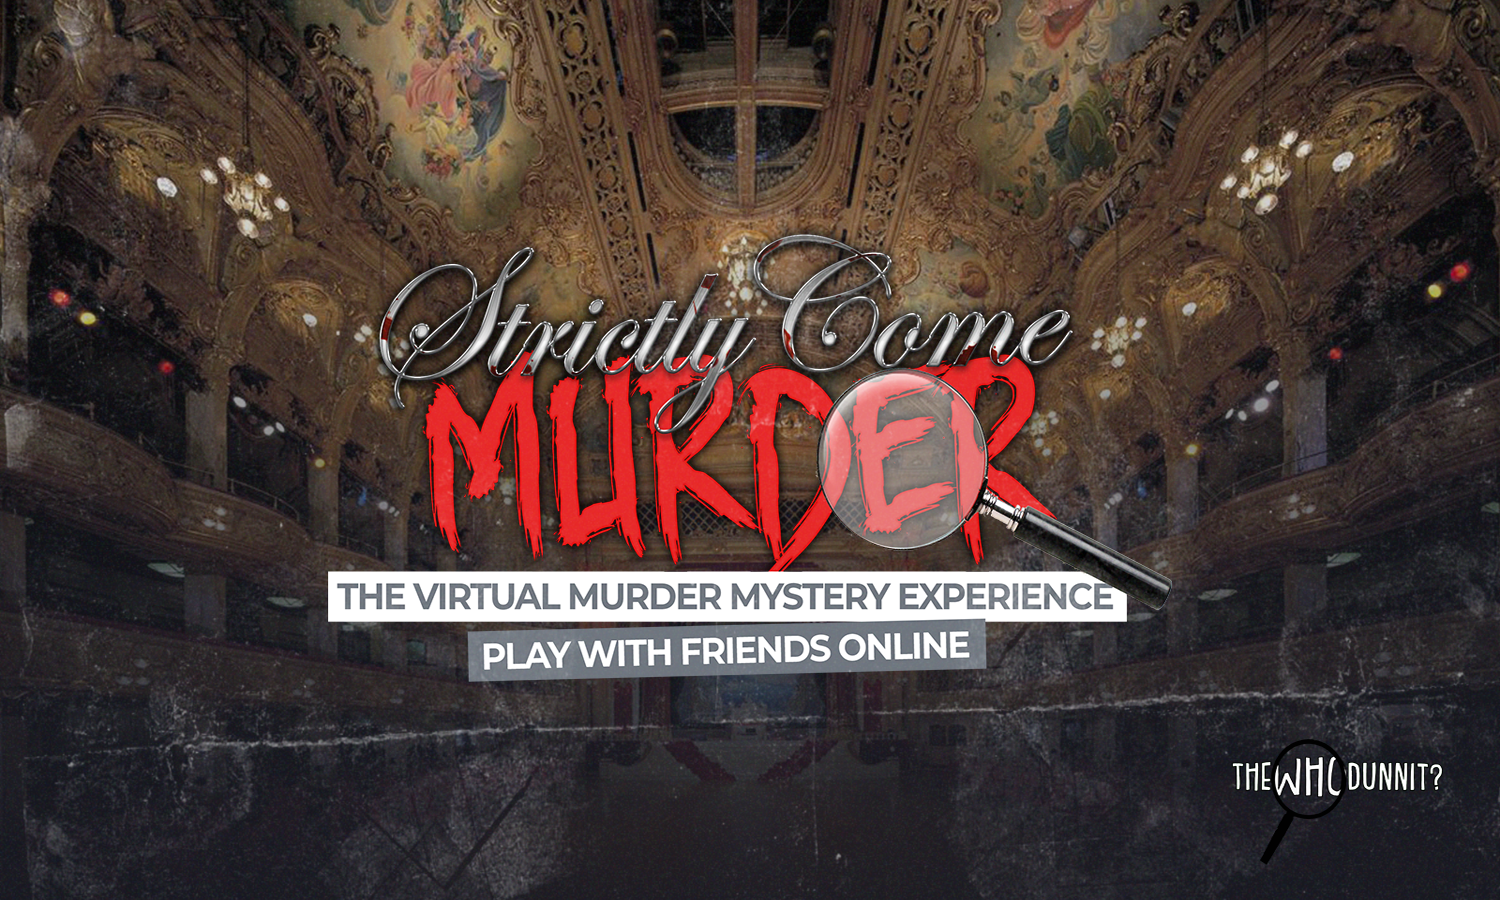 Half-price tickets to the Strictly Come Murder virtual whodunnit